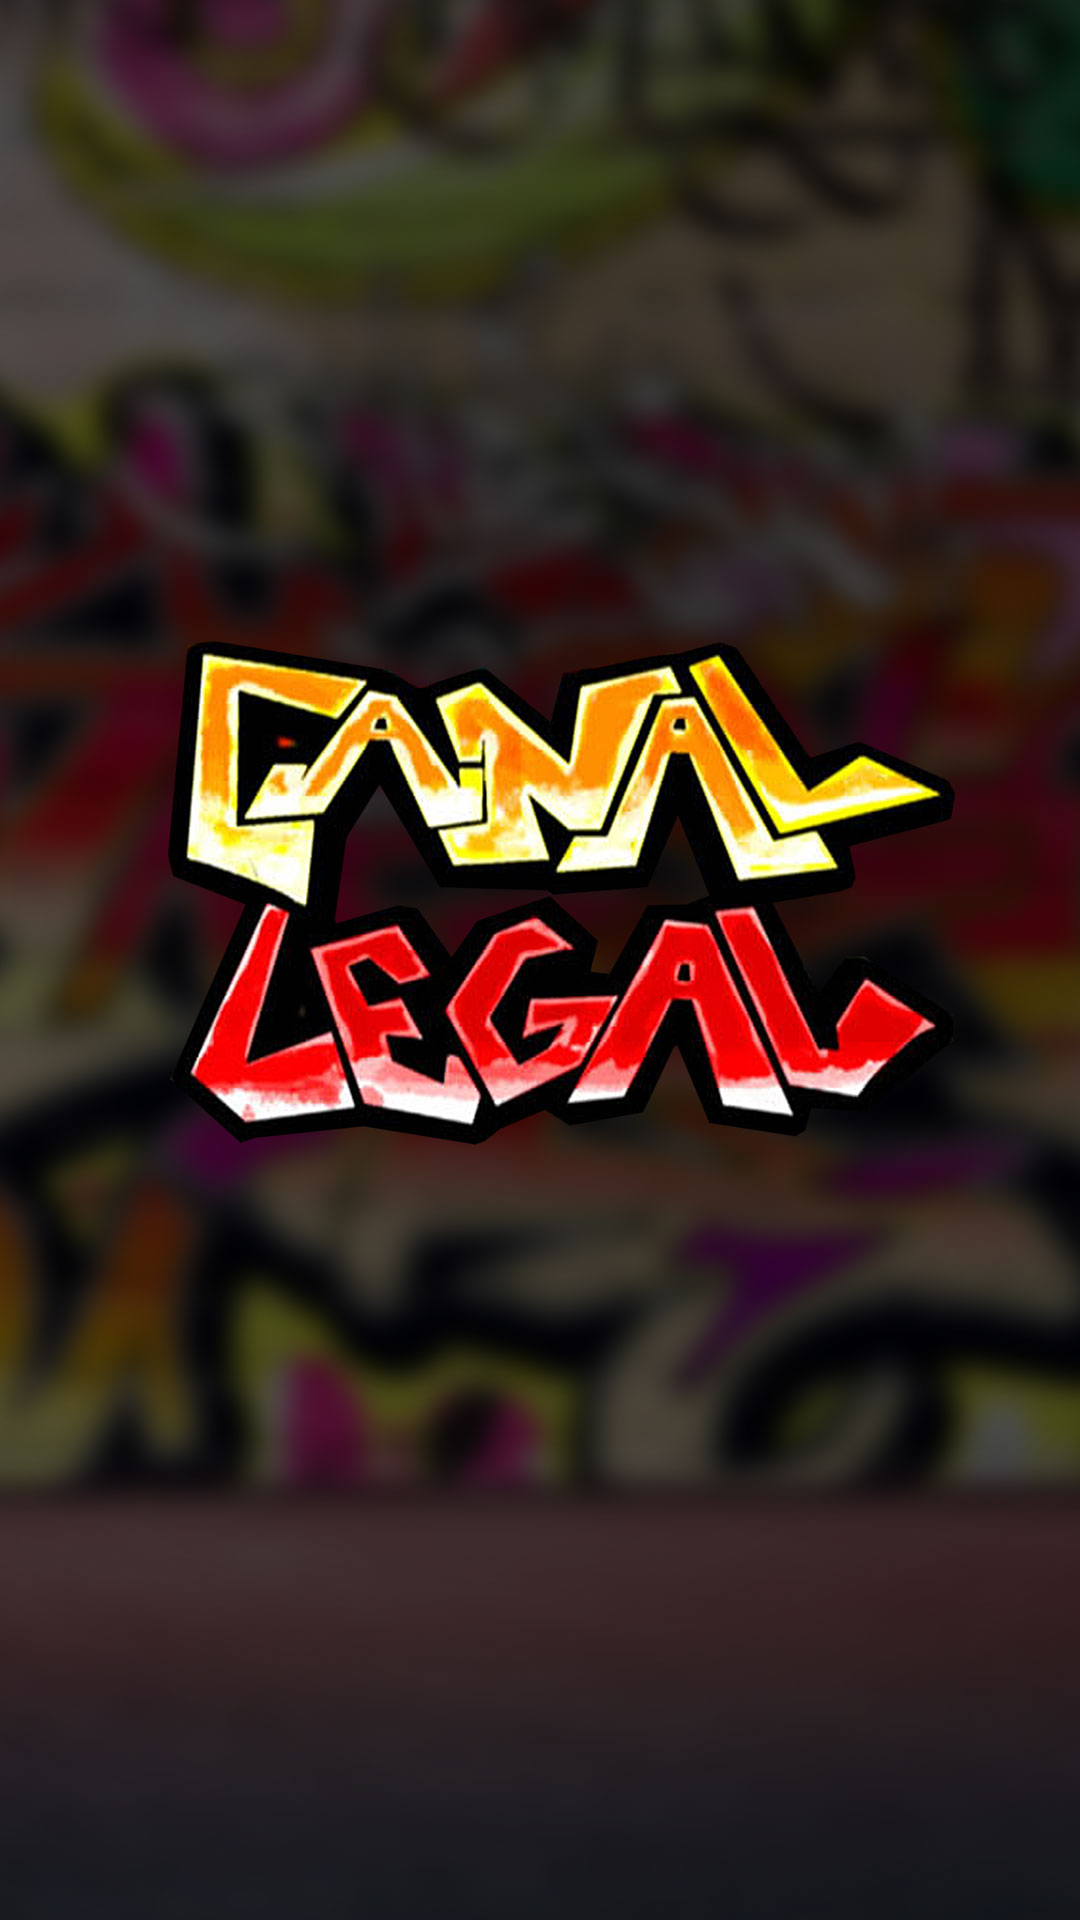 Canal Legal